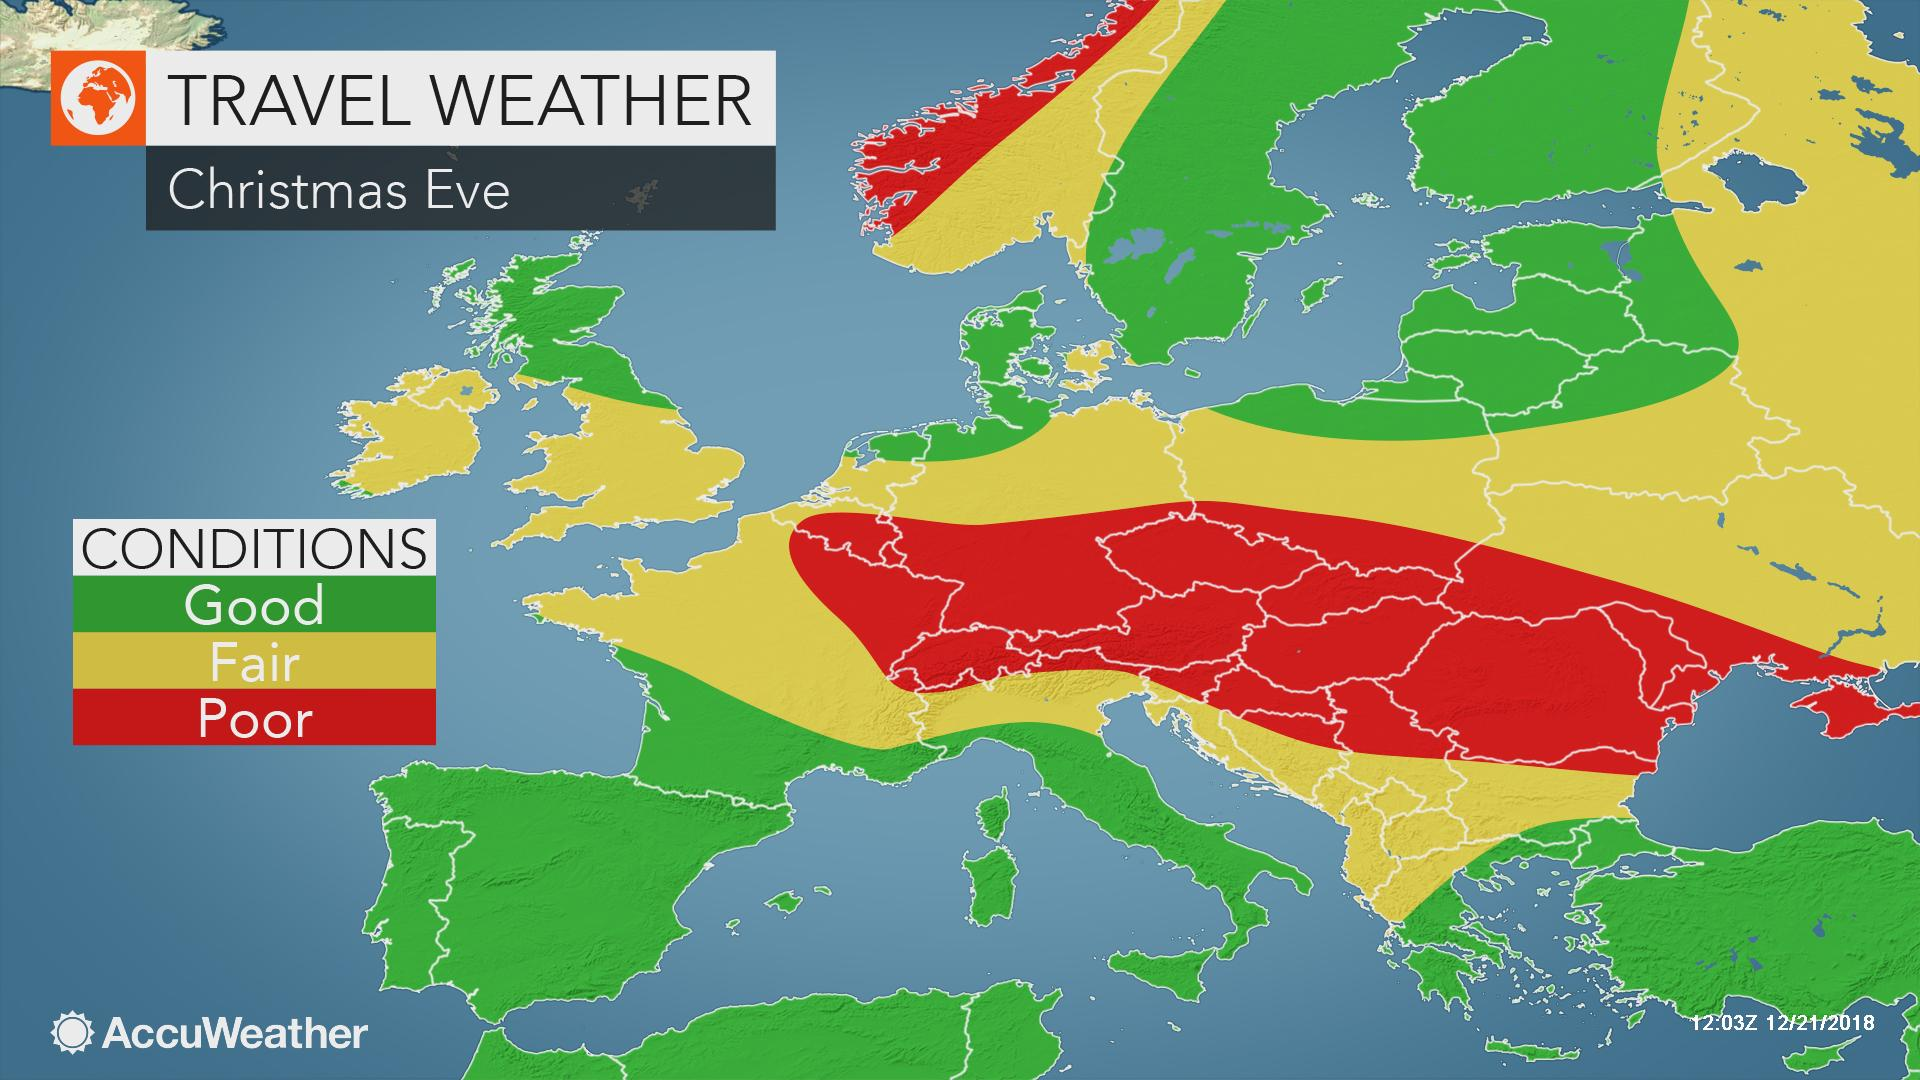 Christmas In Europe Wallpaper.Christmas Outlook Stormy Weather To Bring Travel Hazards